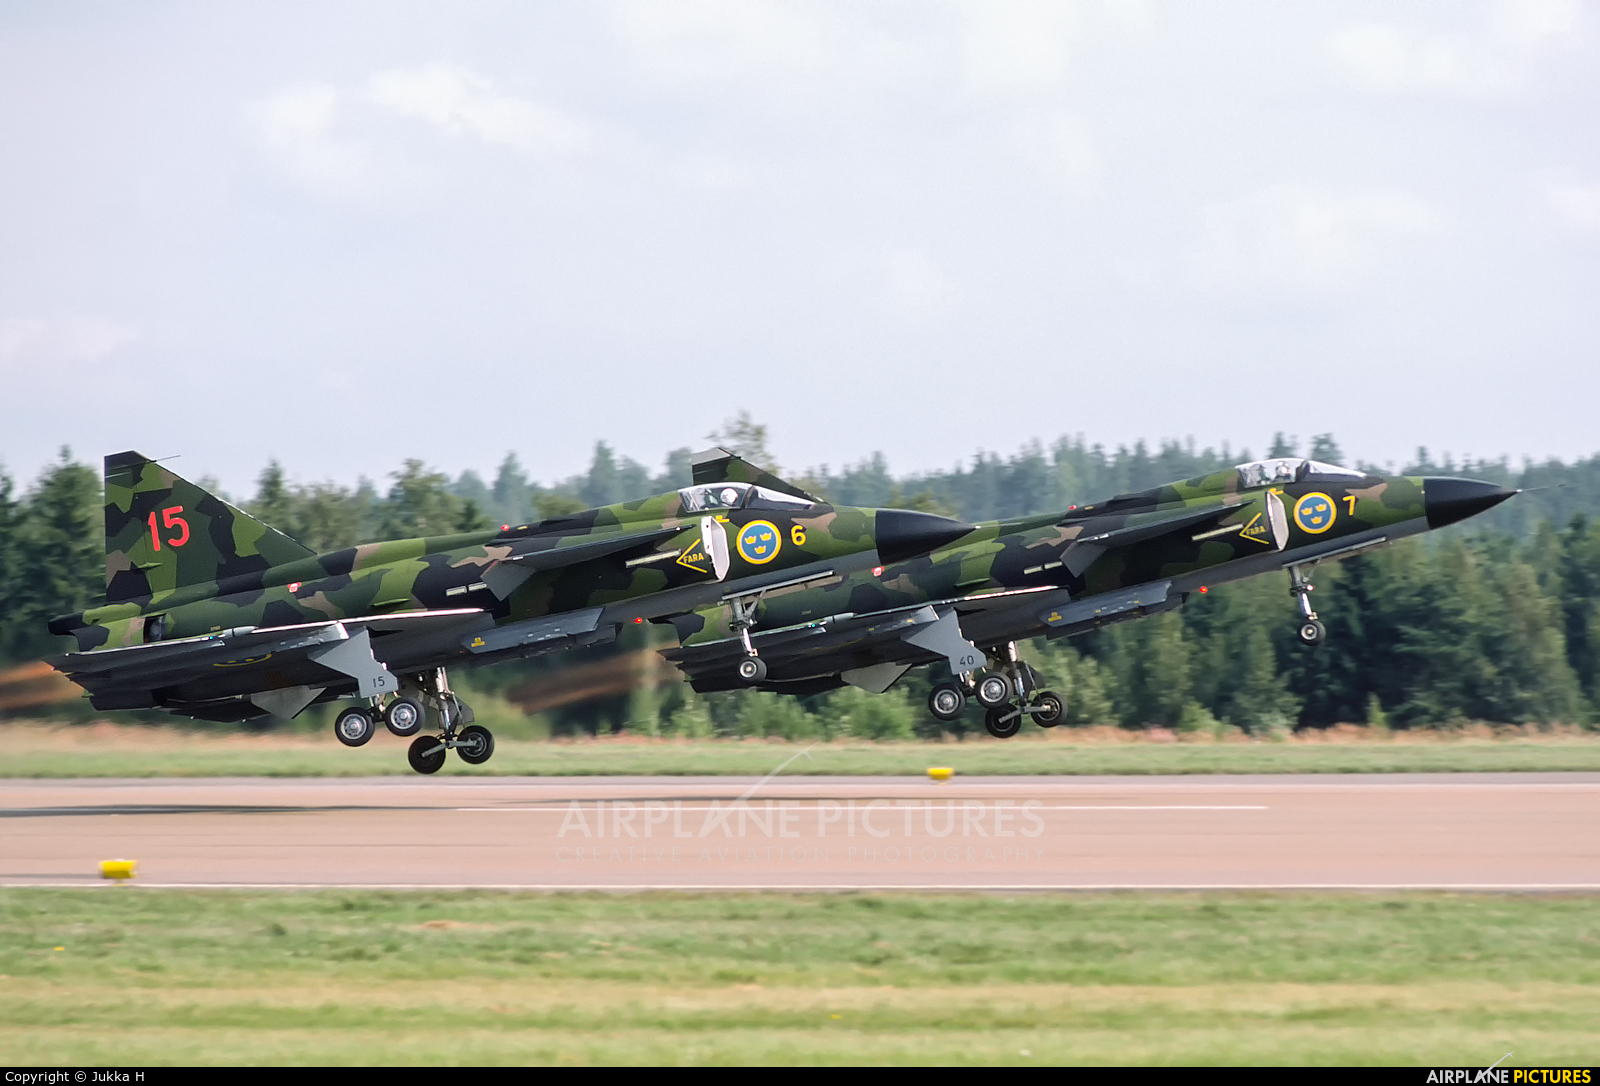 Sweden - Air Force 37102 aircraft at Helsinki - Vantaa